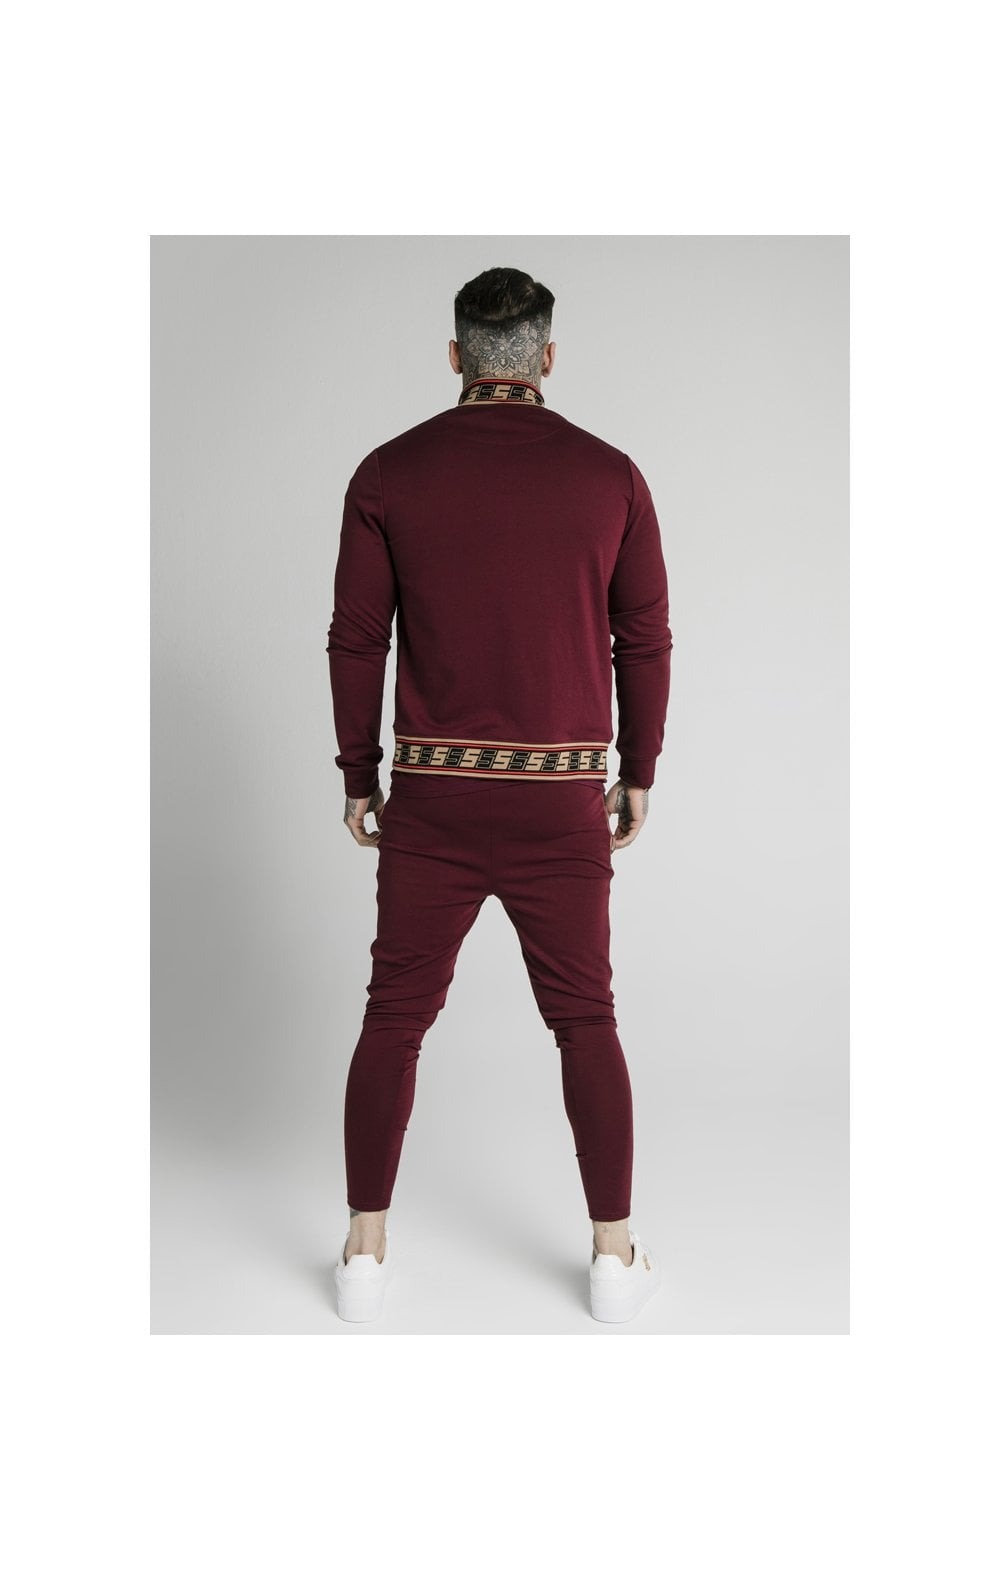 SikSilk Retro Jacquard Athlete Pants - Burgundy (6)